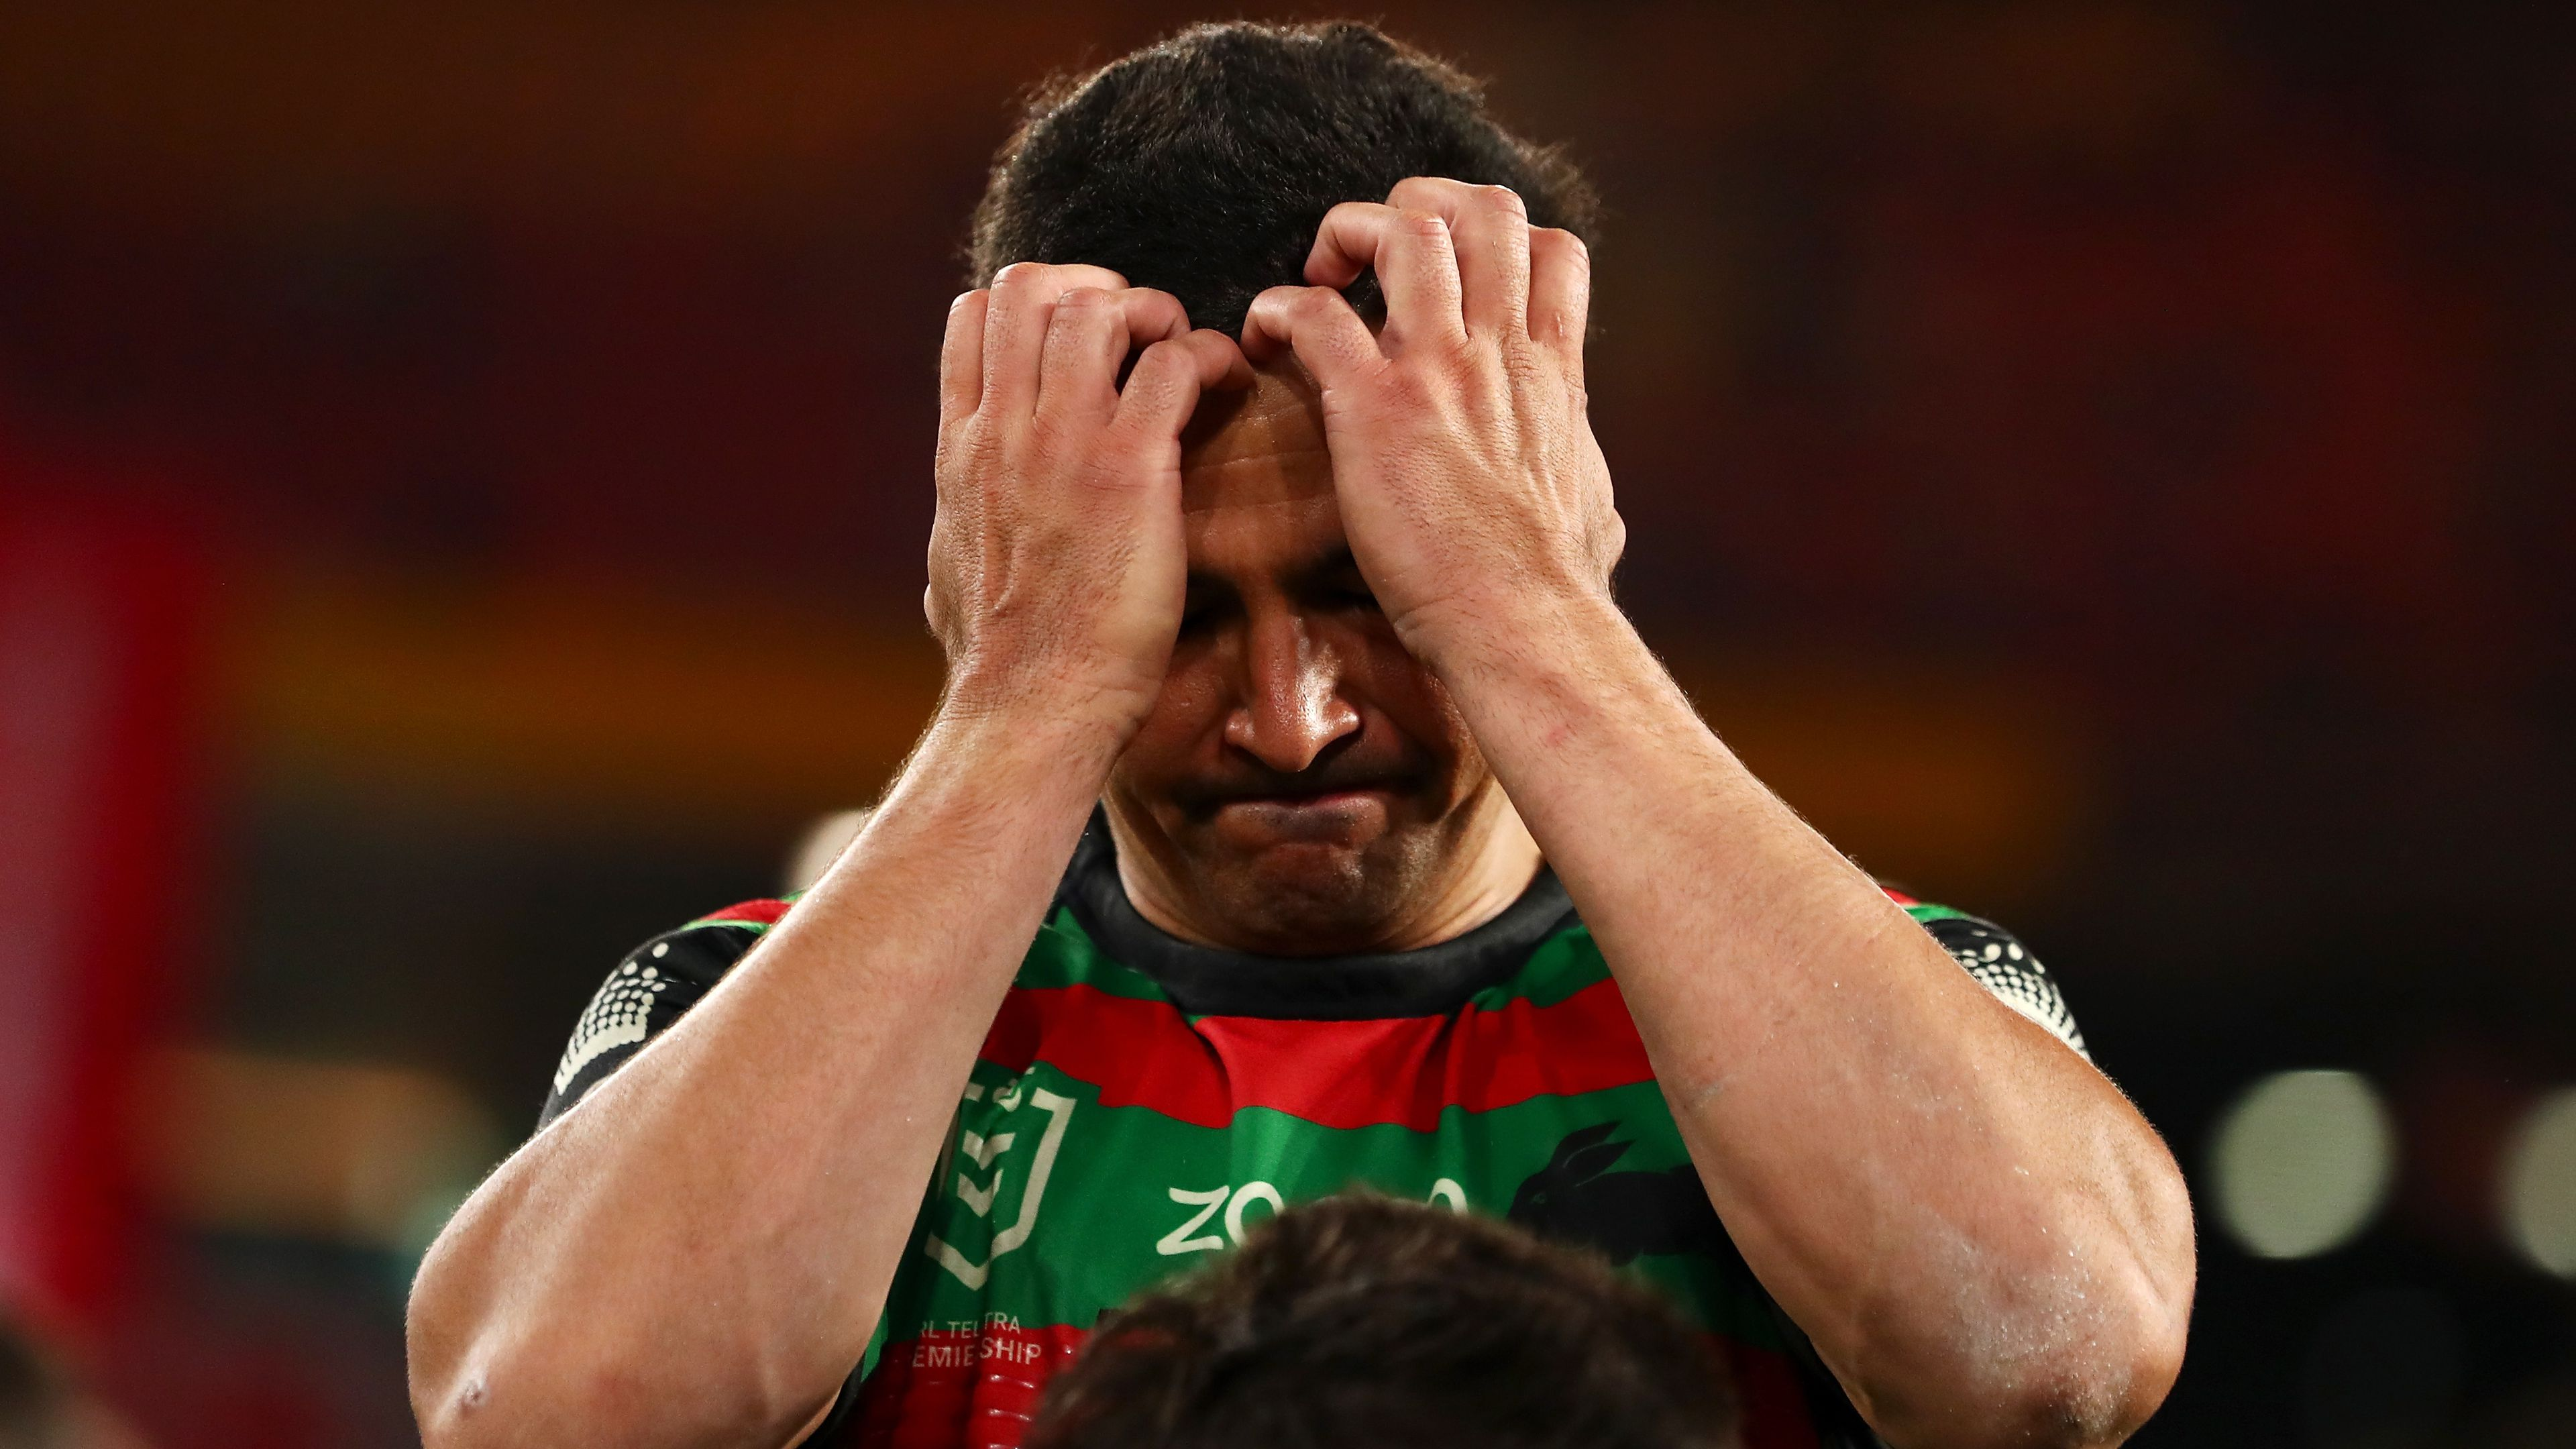 EXCLUSIVE: The Cody Walker moment when Peter Sterling saw Souths begin to unravel